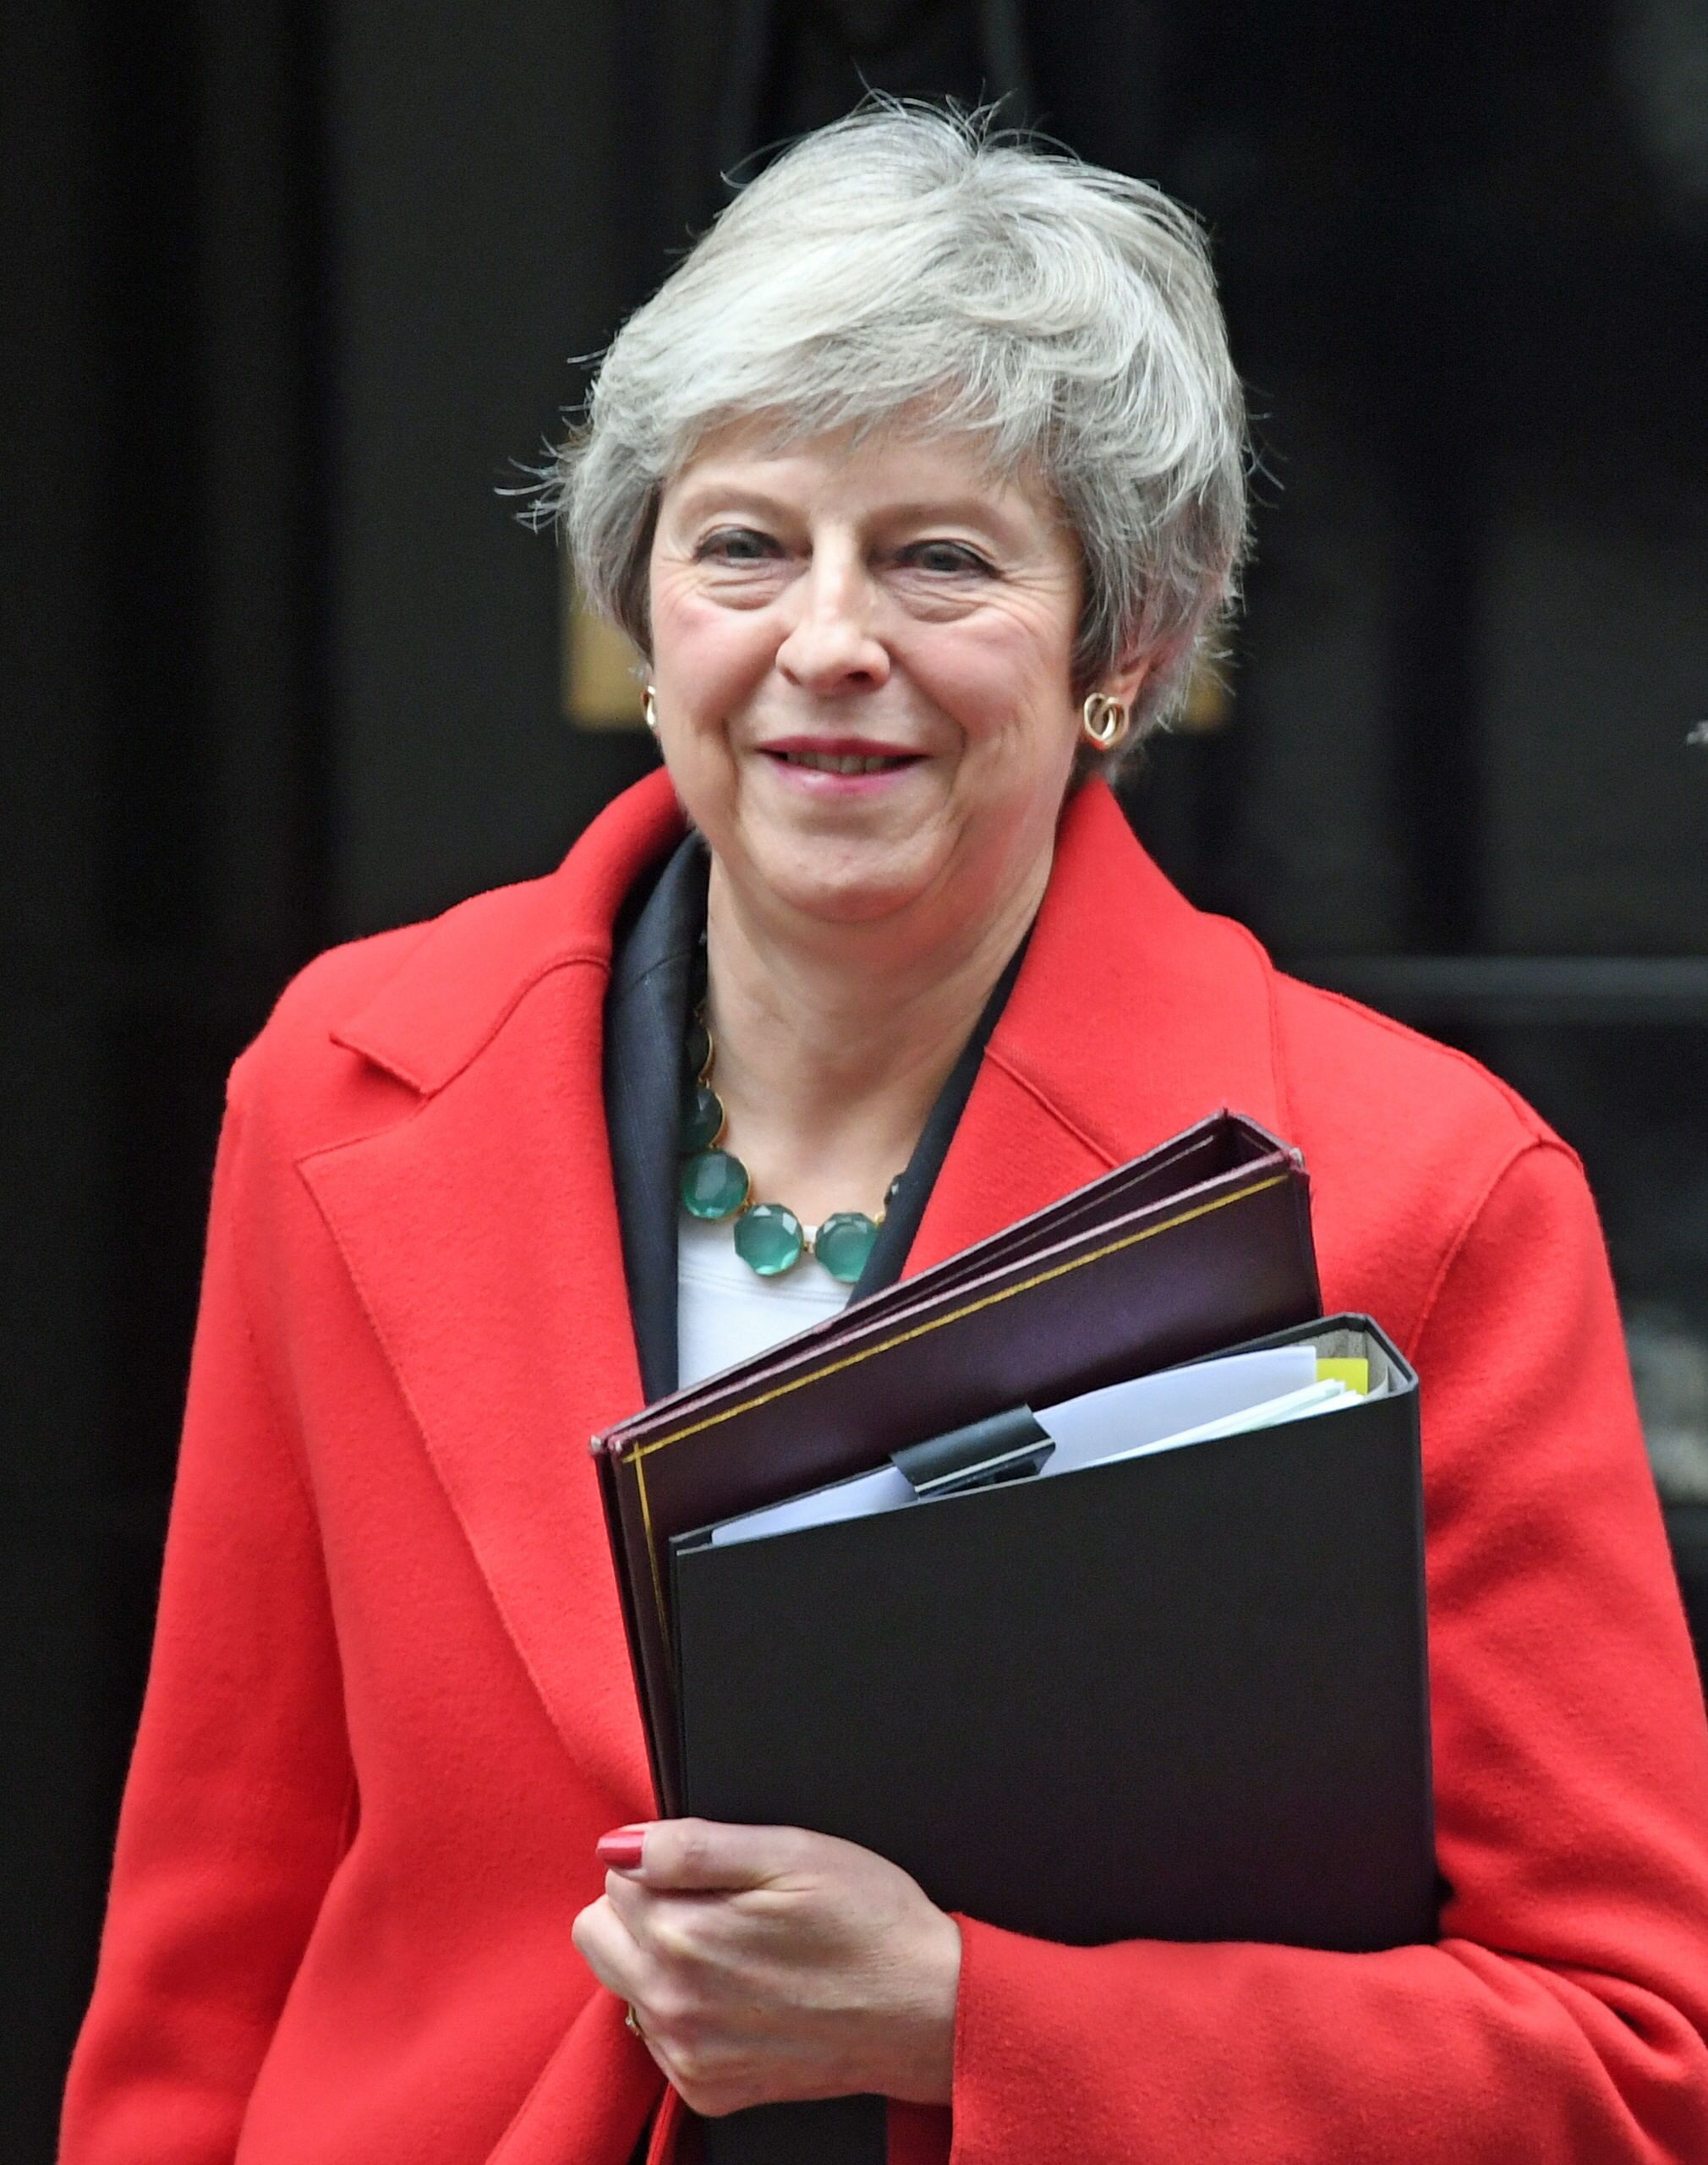 huffingtonpost.co.uk - Jonathan Bartley - Even Theresa May Now Accepts There Is Another Option - To Stay In The European Union